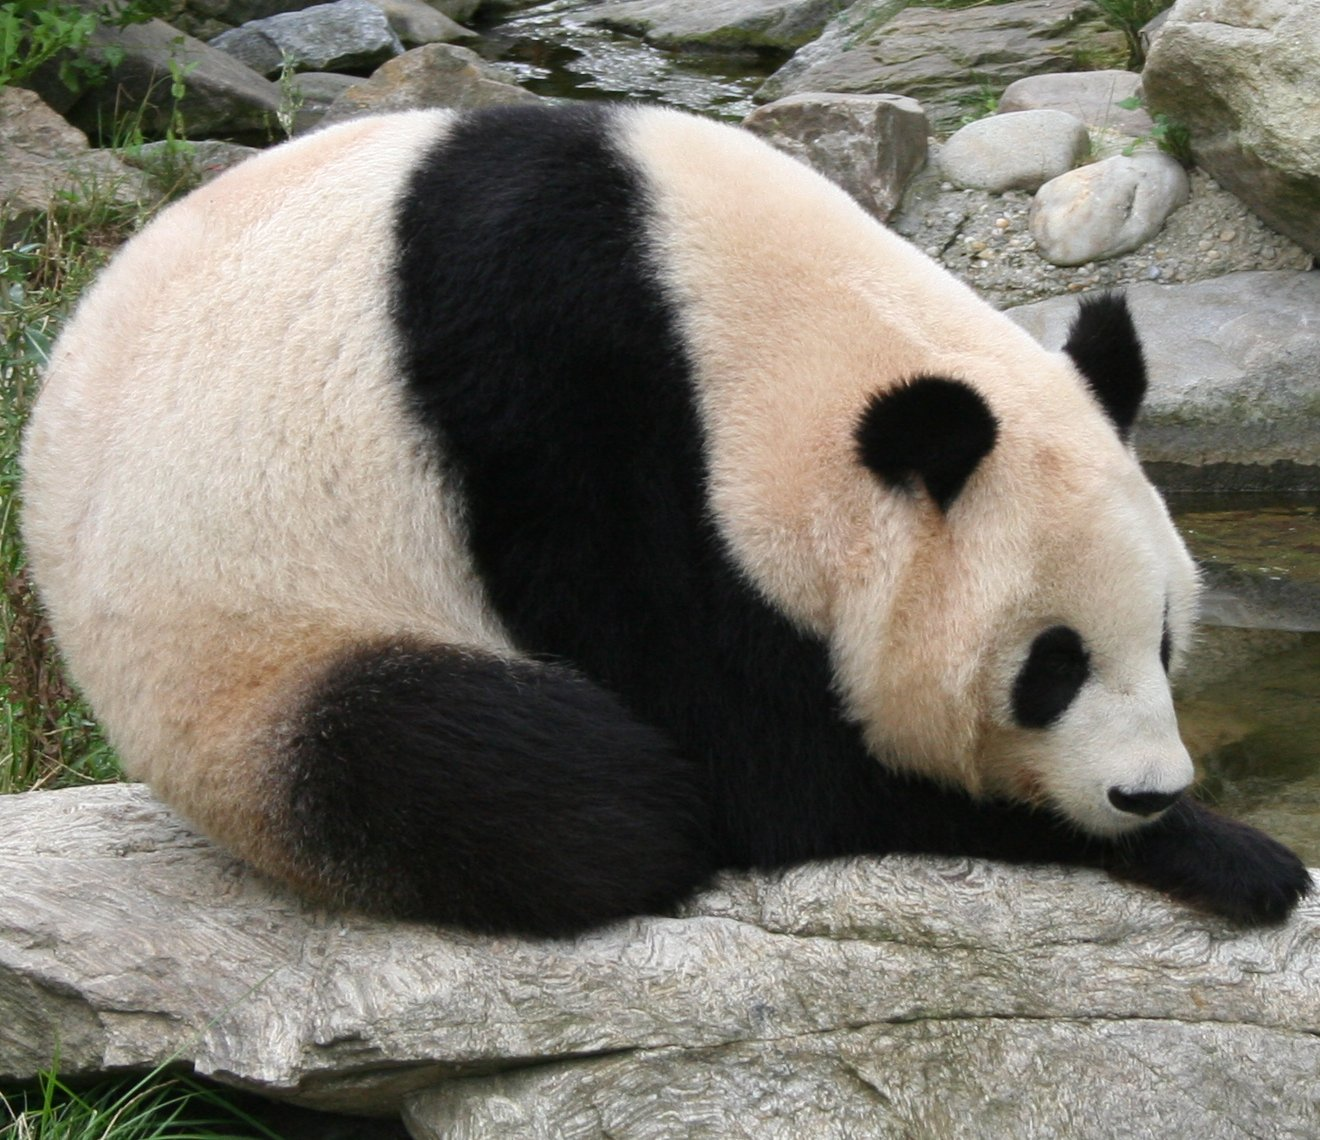 File:Giant panda at Vienna Zoo (cropped).jpg